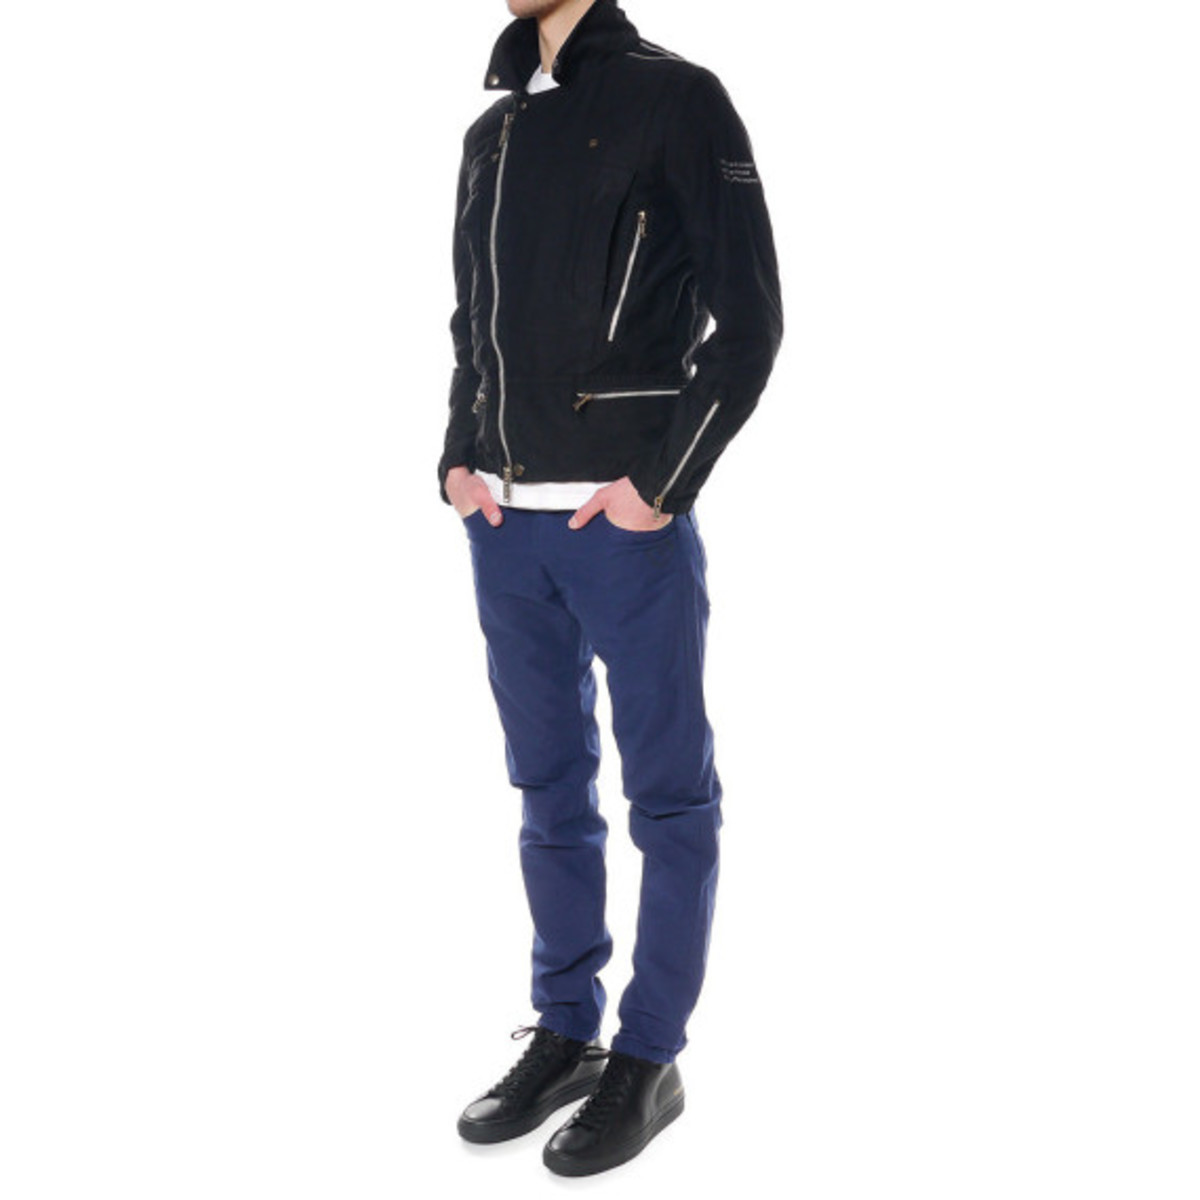 undercover-m4201-2-jacket-12